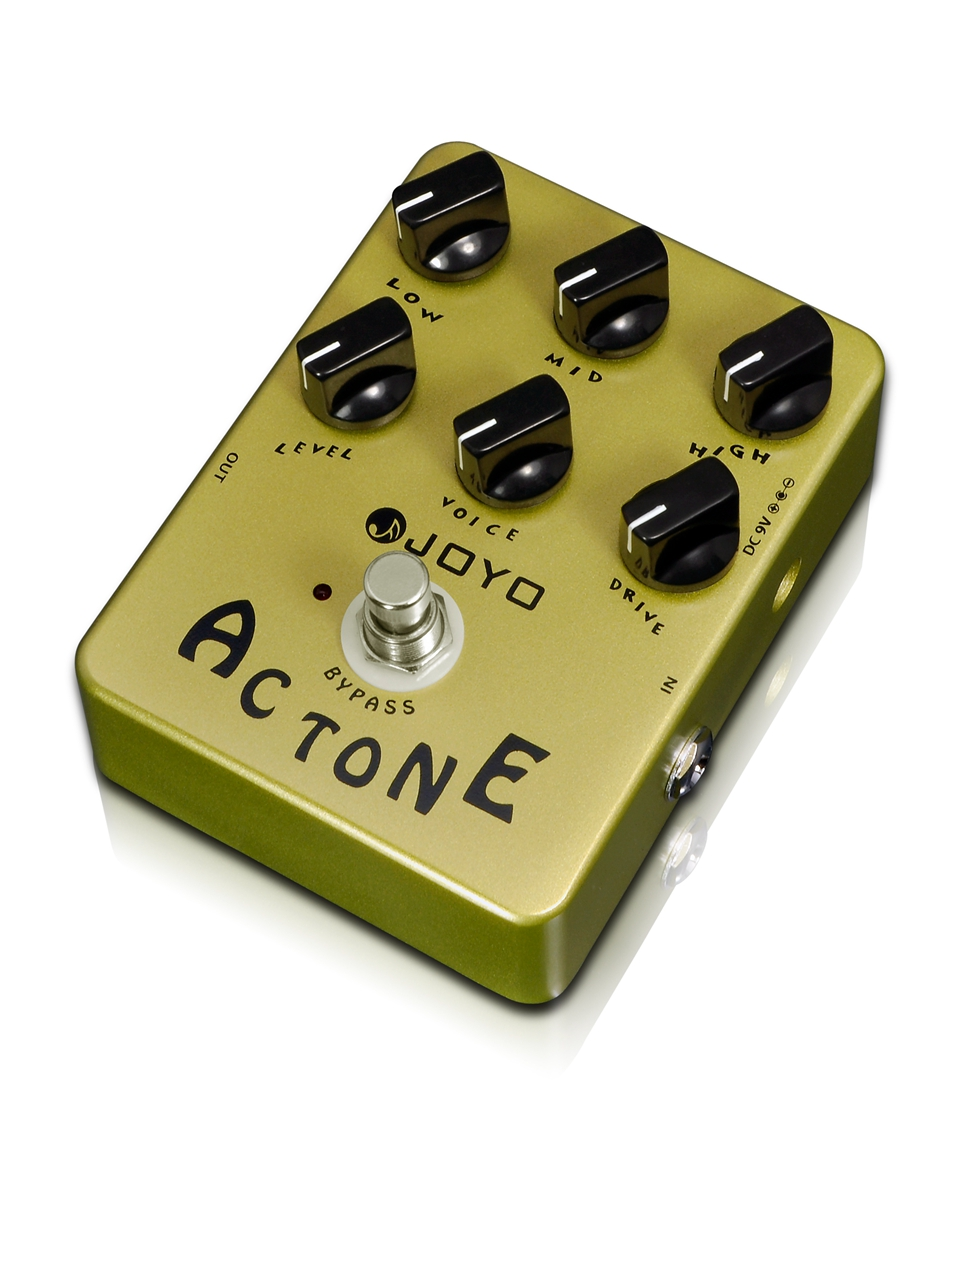 JOYO AC Tone Guitar Effect Pedal Classic British Rock Sound Reproduces The Sound Of A Vox AC30 Amplifier<br>